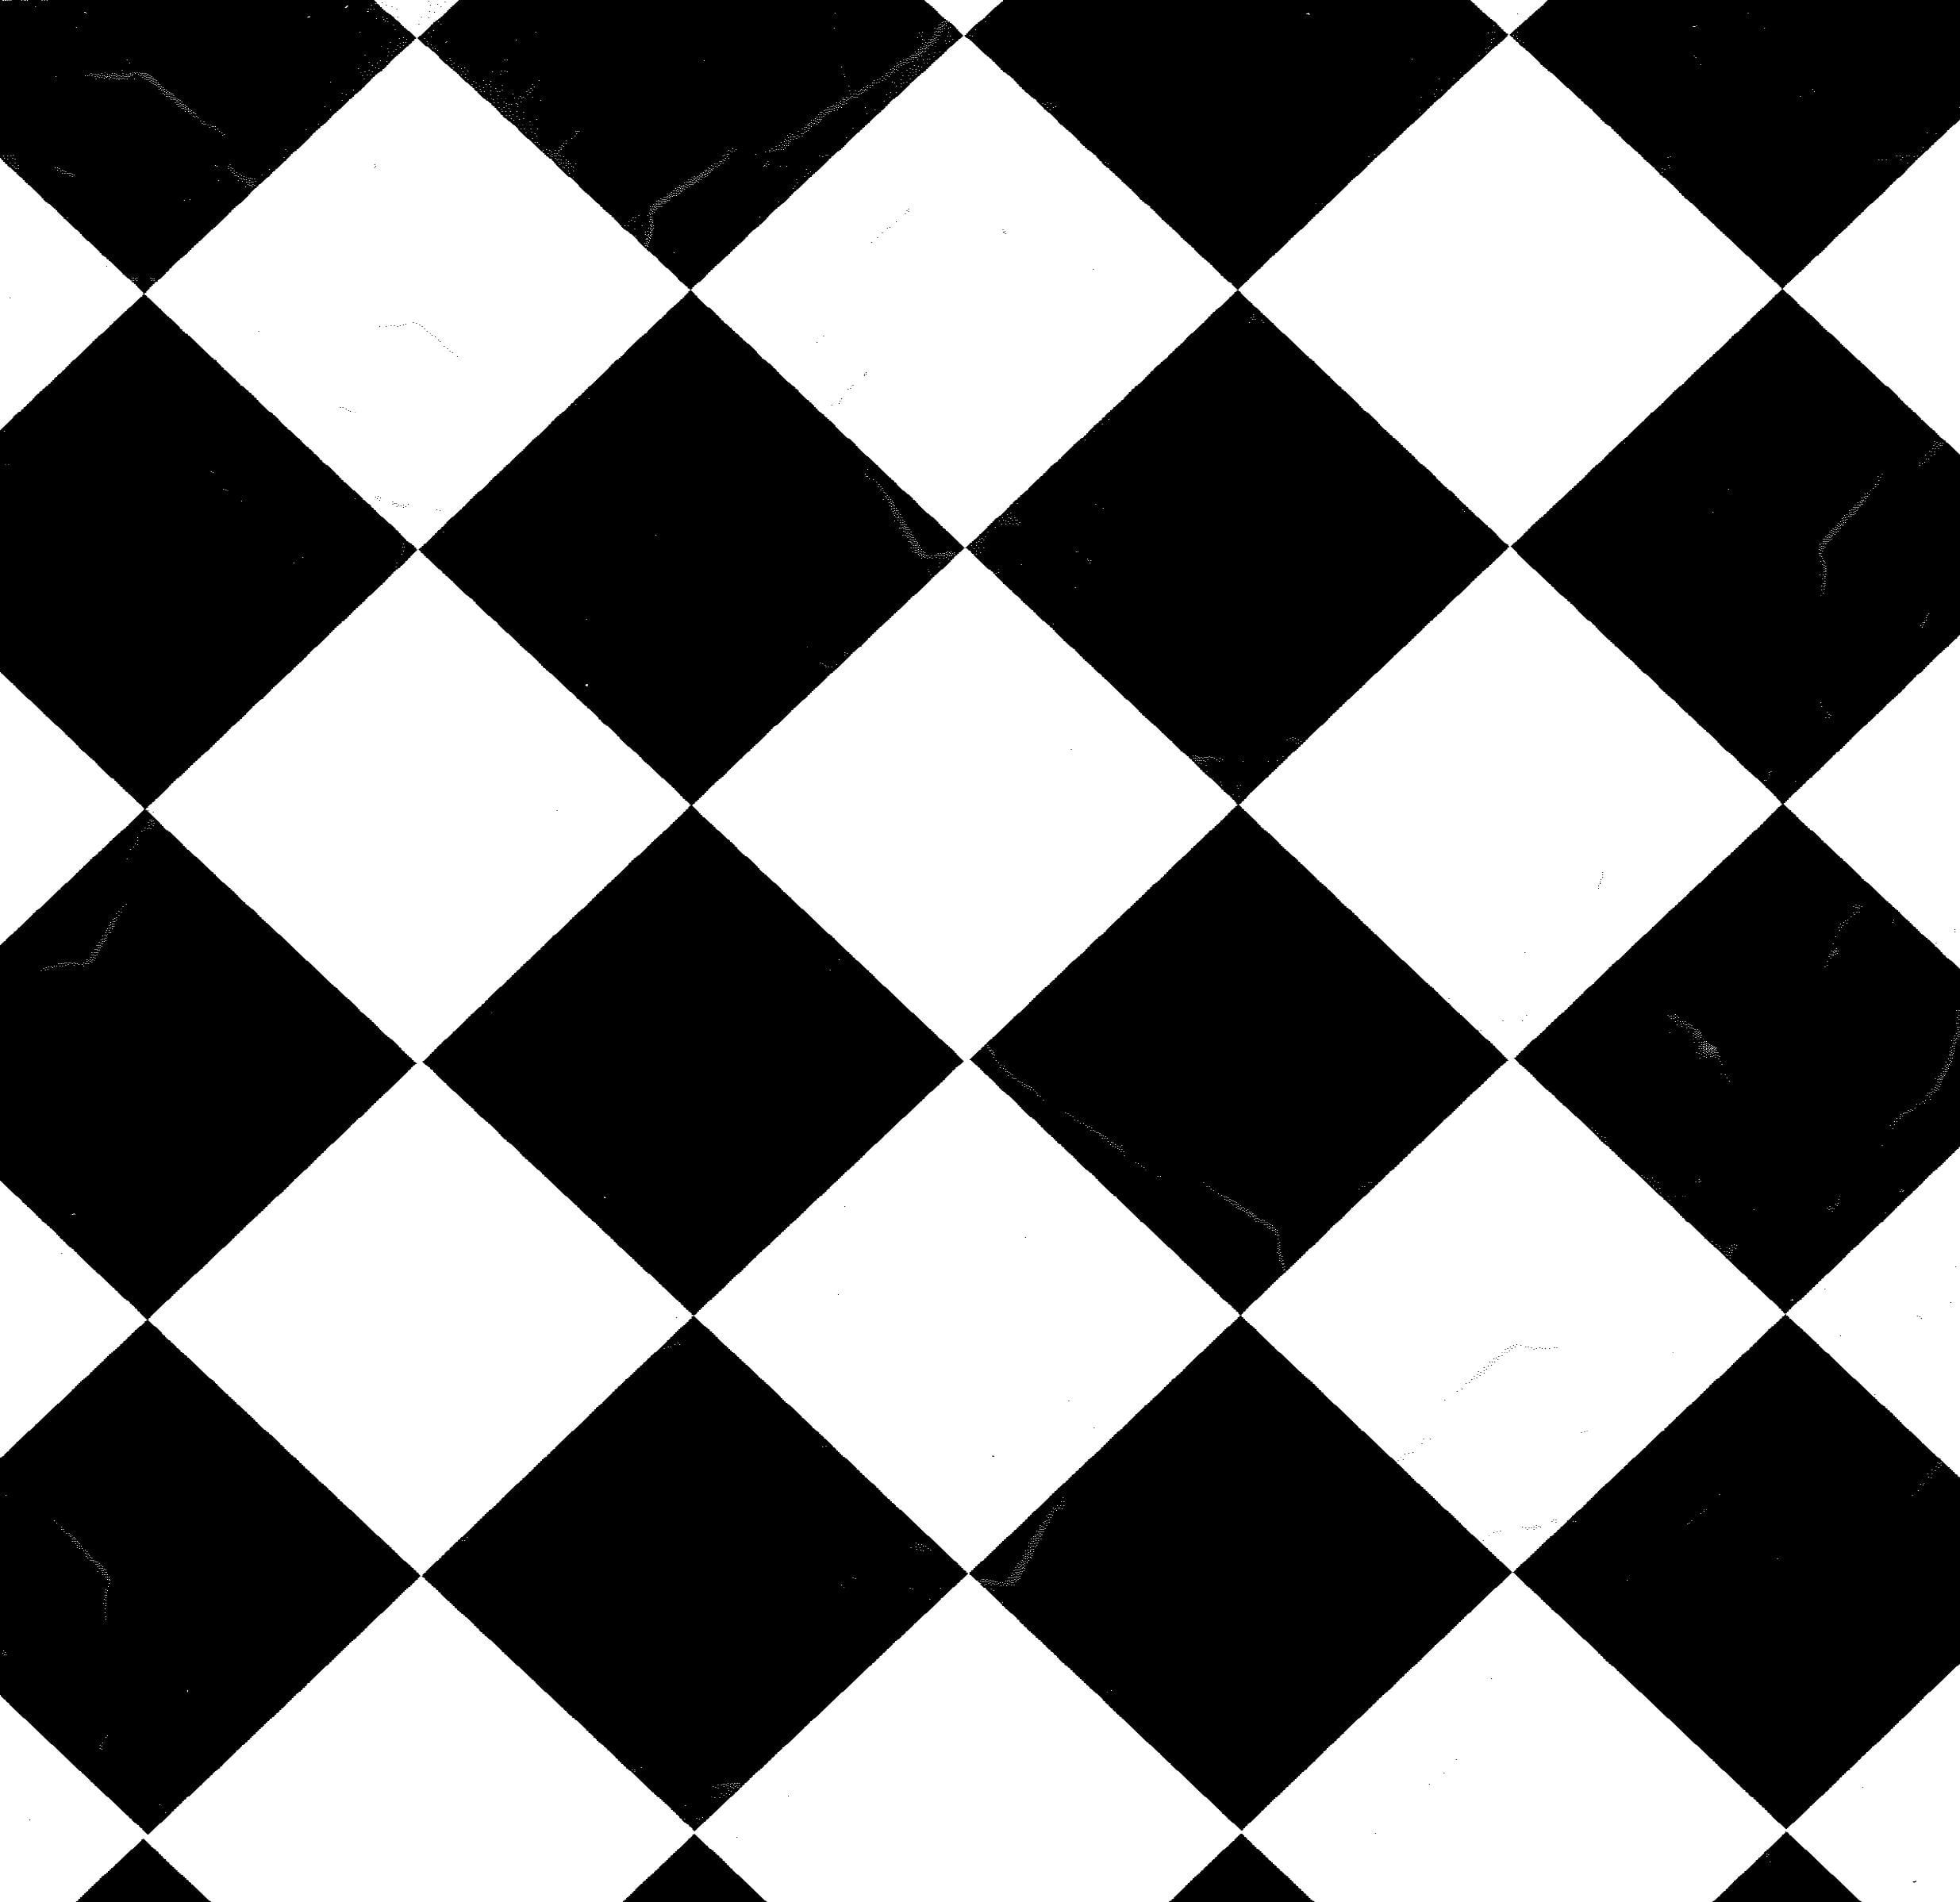 Black and White Marble Tile Paper